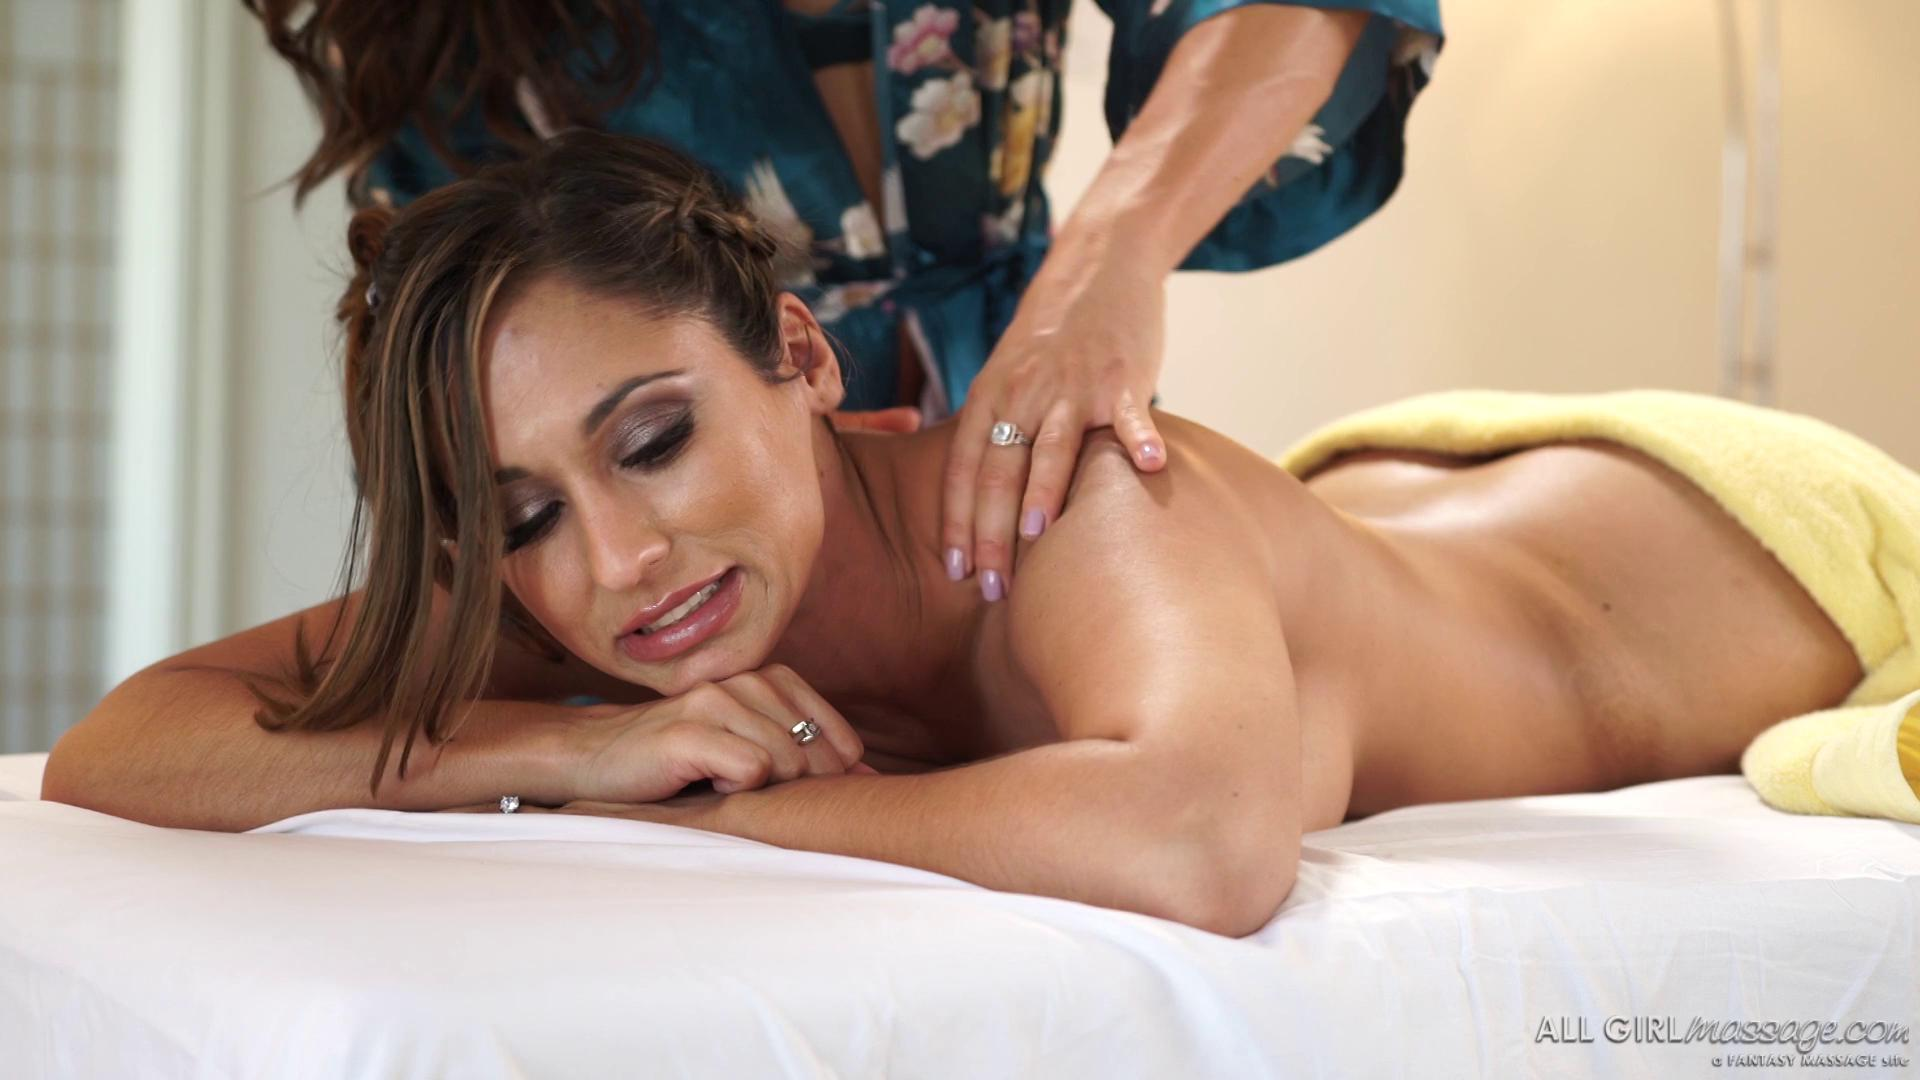 AllGirlMassage – Aspen Rae And Reena Sky The Come Out Special